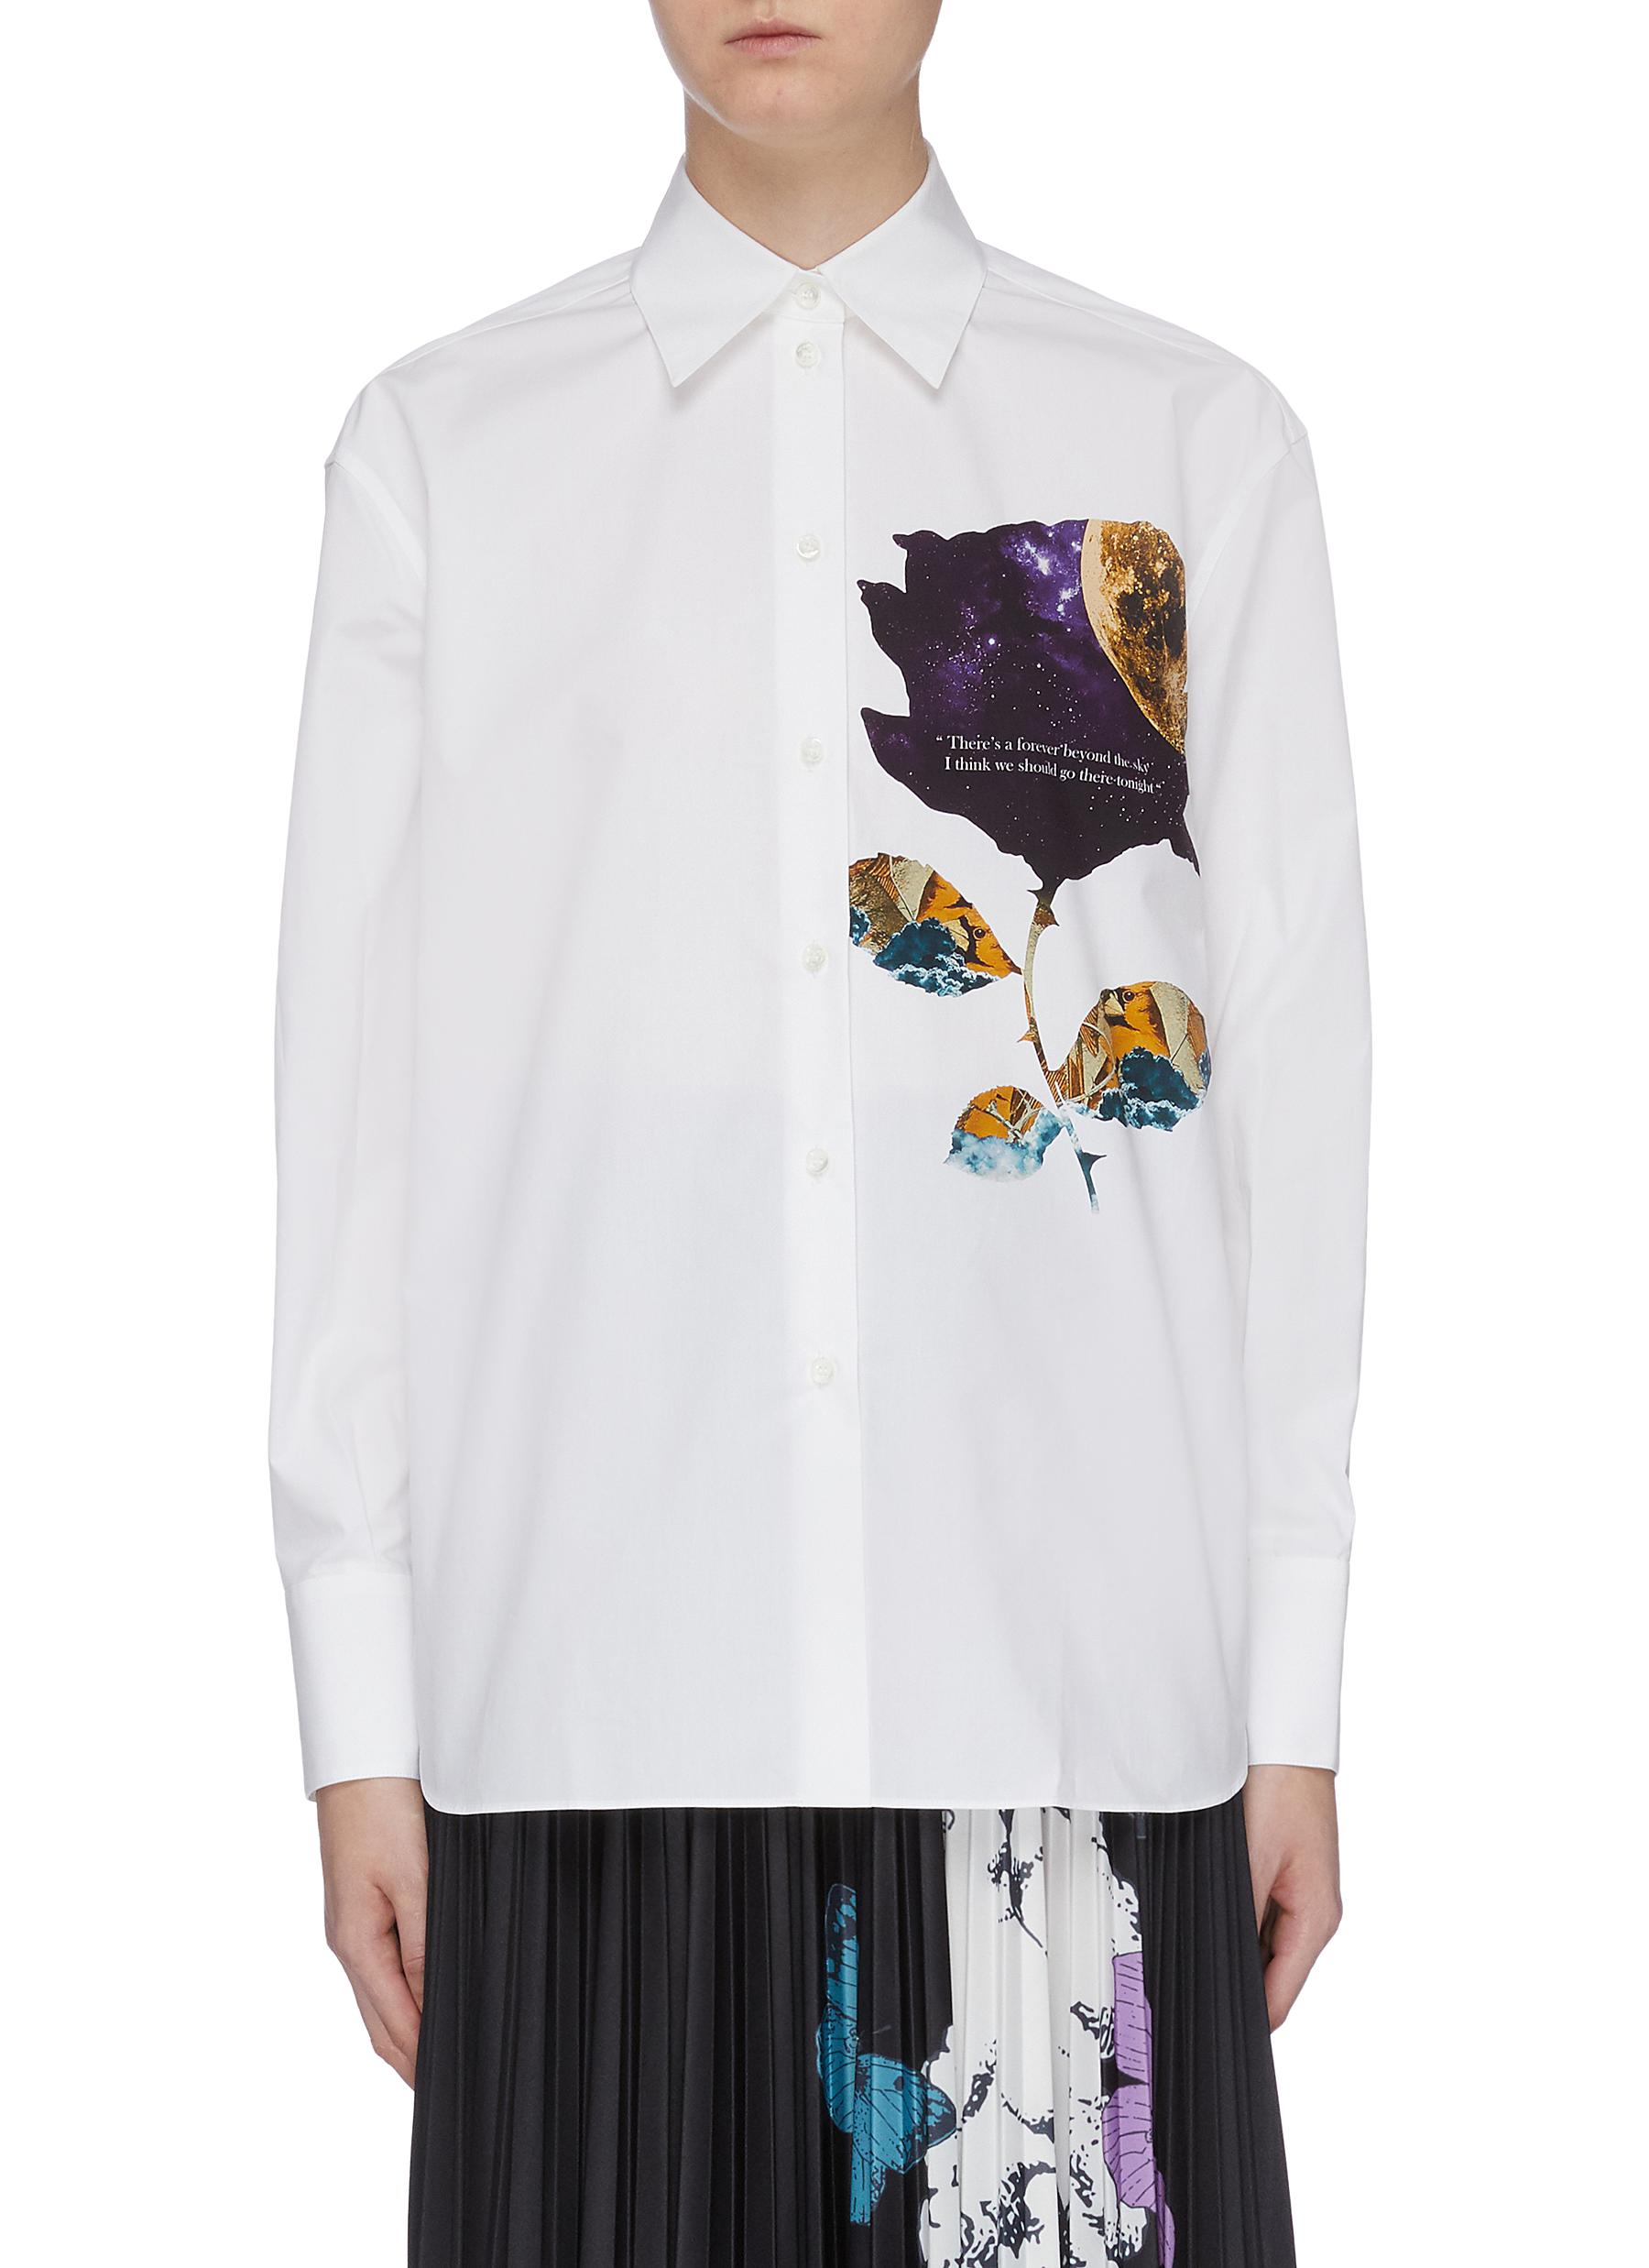 Cosmos rose slogan print shirt by Valentino